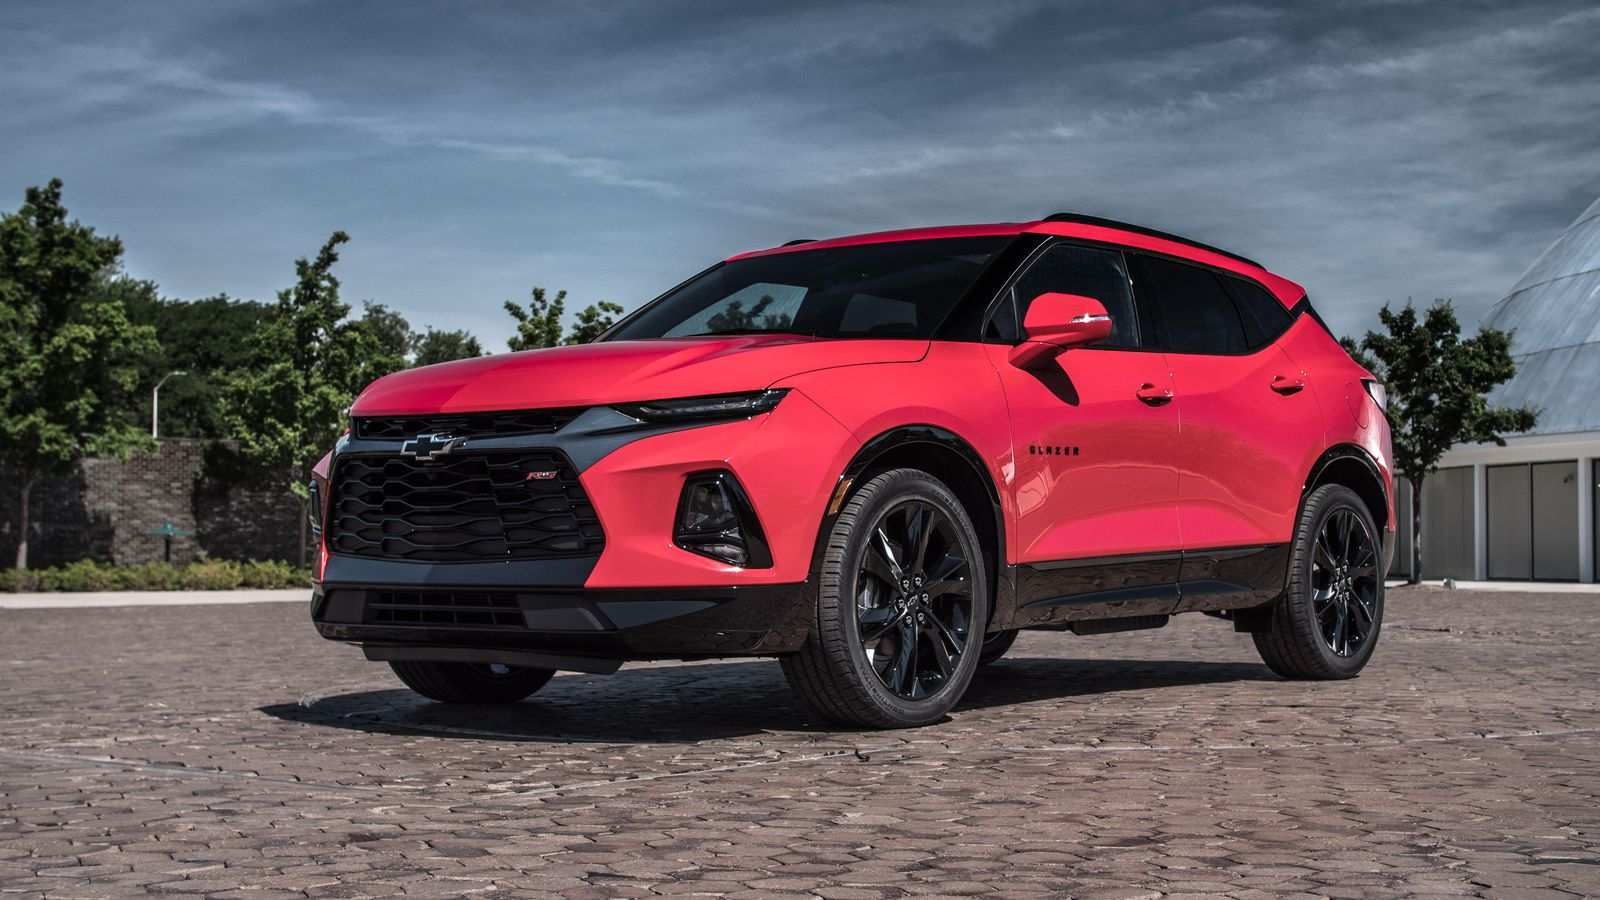 56 All New 2019 Chevrolet Blazer Release Date Style